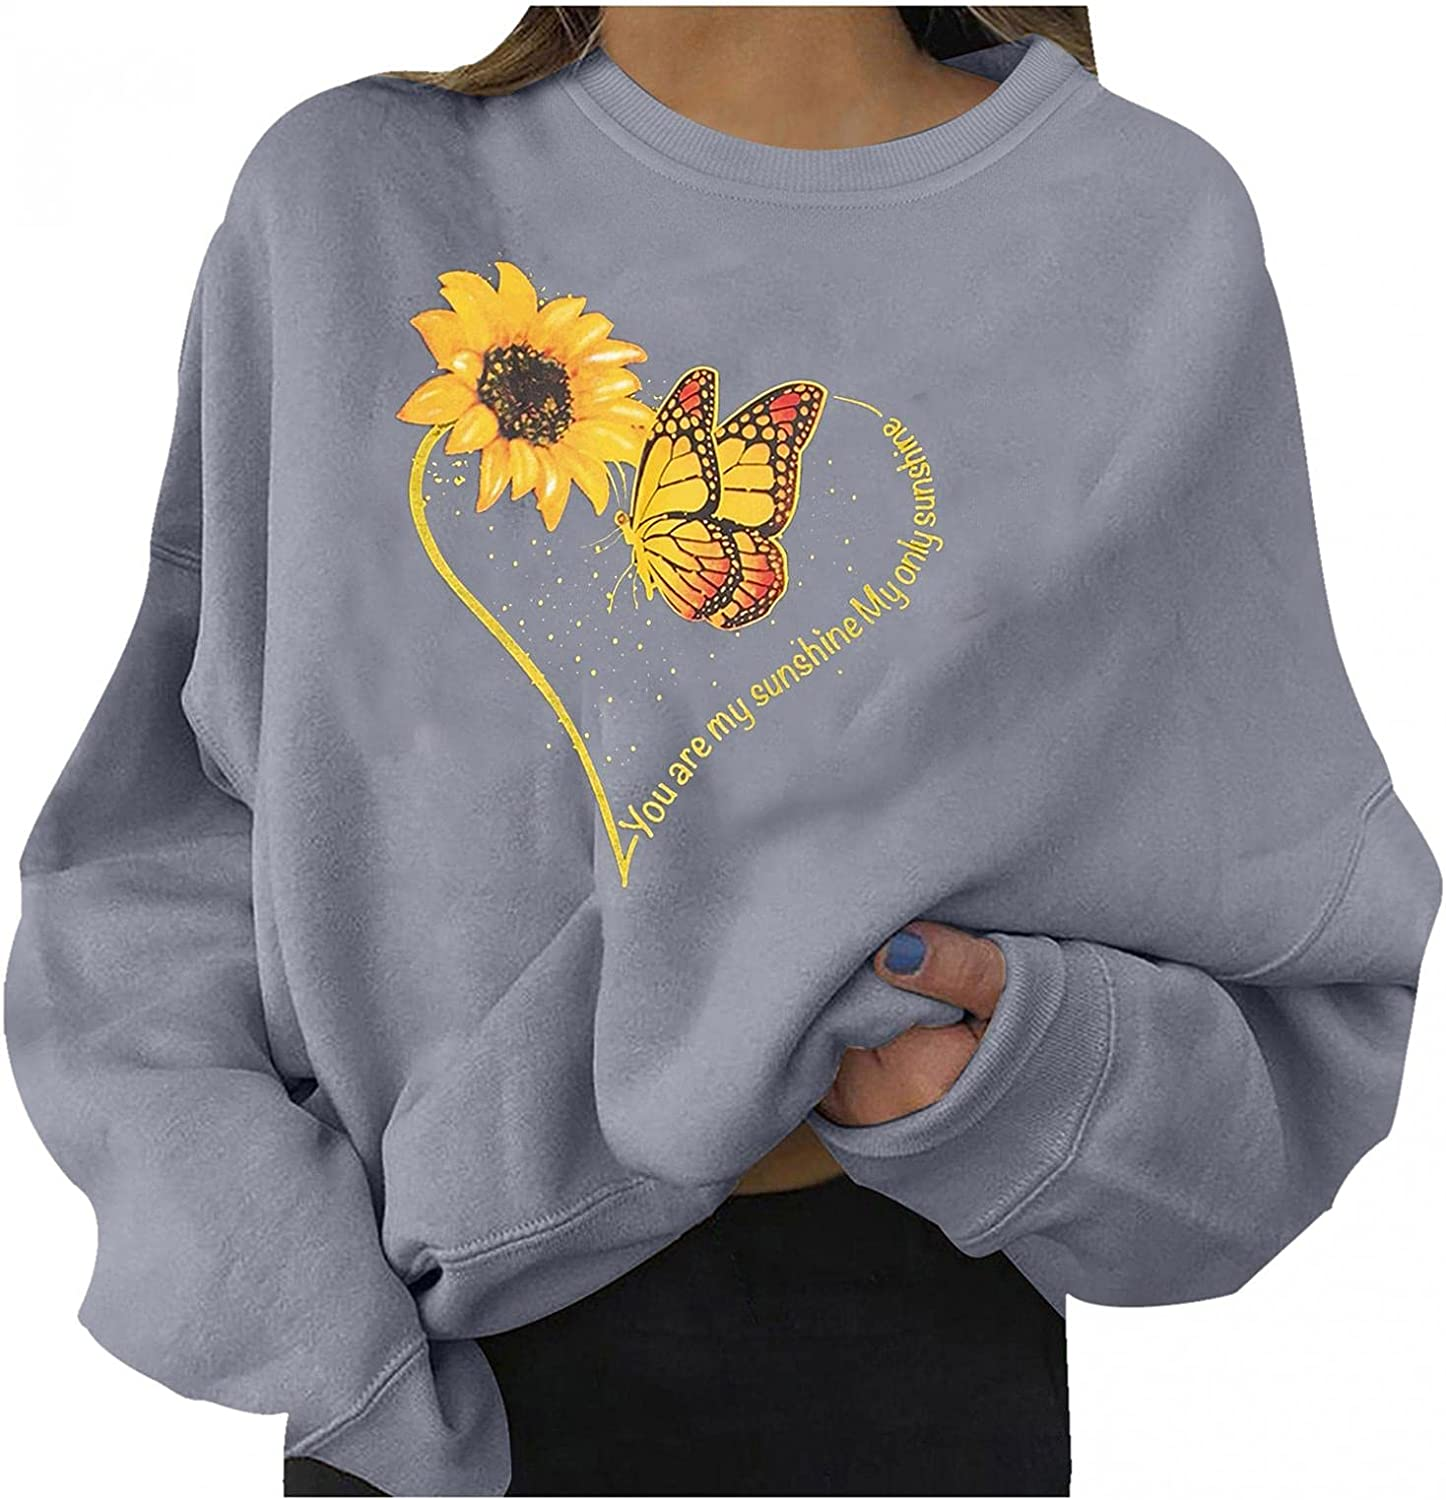 Halloween Graphic Sweatshirts for Women Fashion Crewneck Loose Fit Long Sleeve Sunflower Butterfly Heart Pullover Tops Blouse